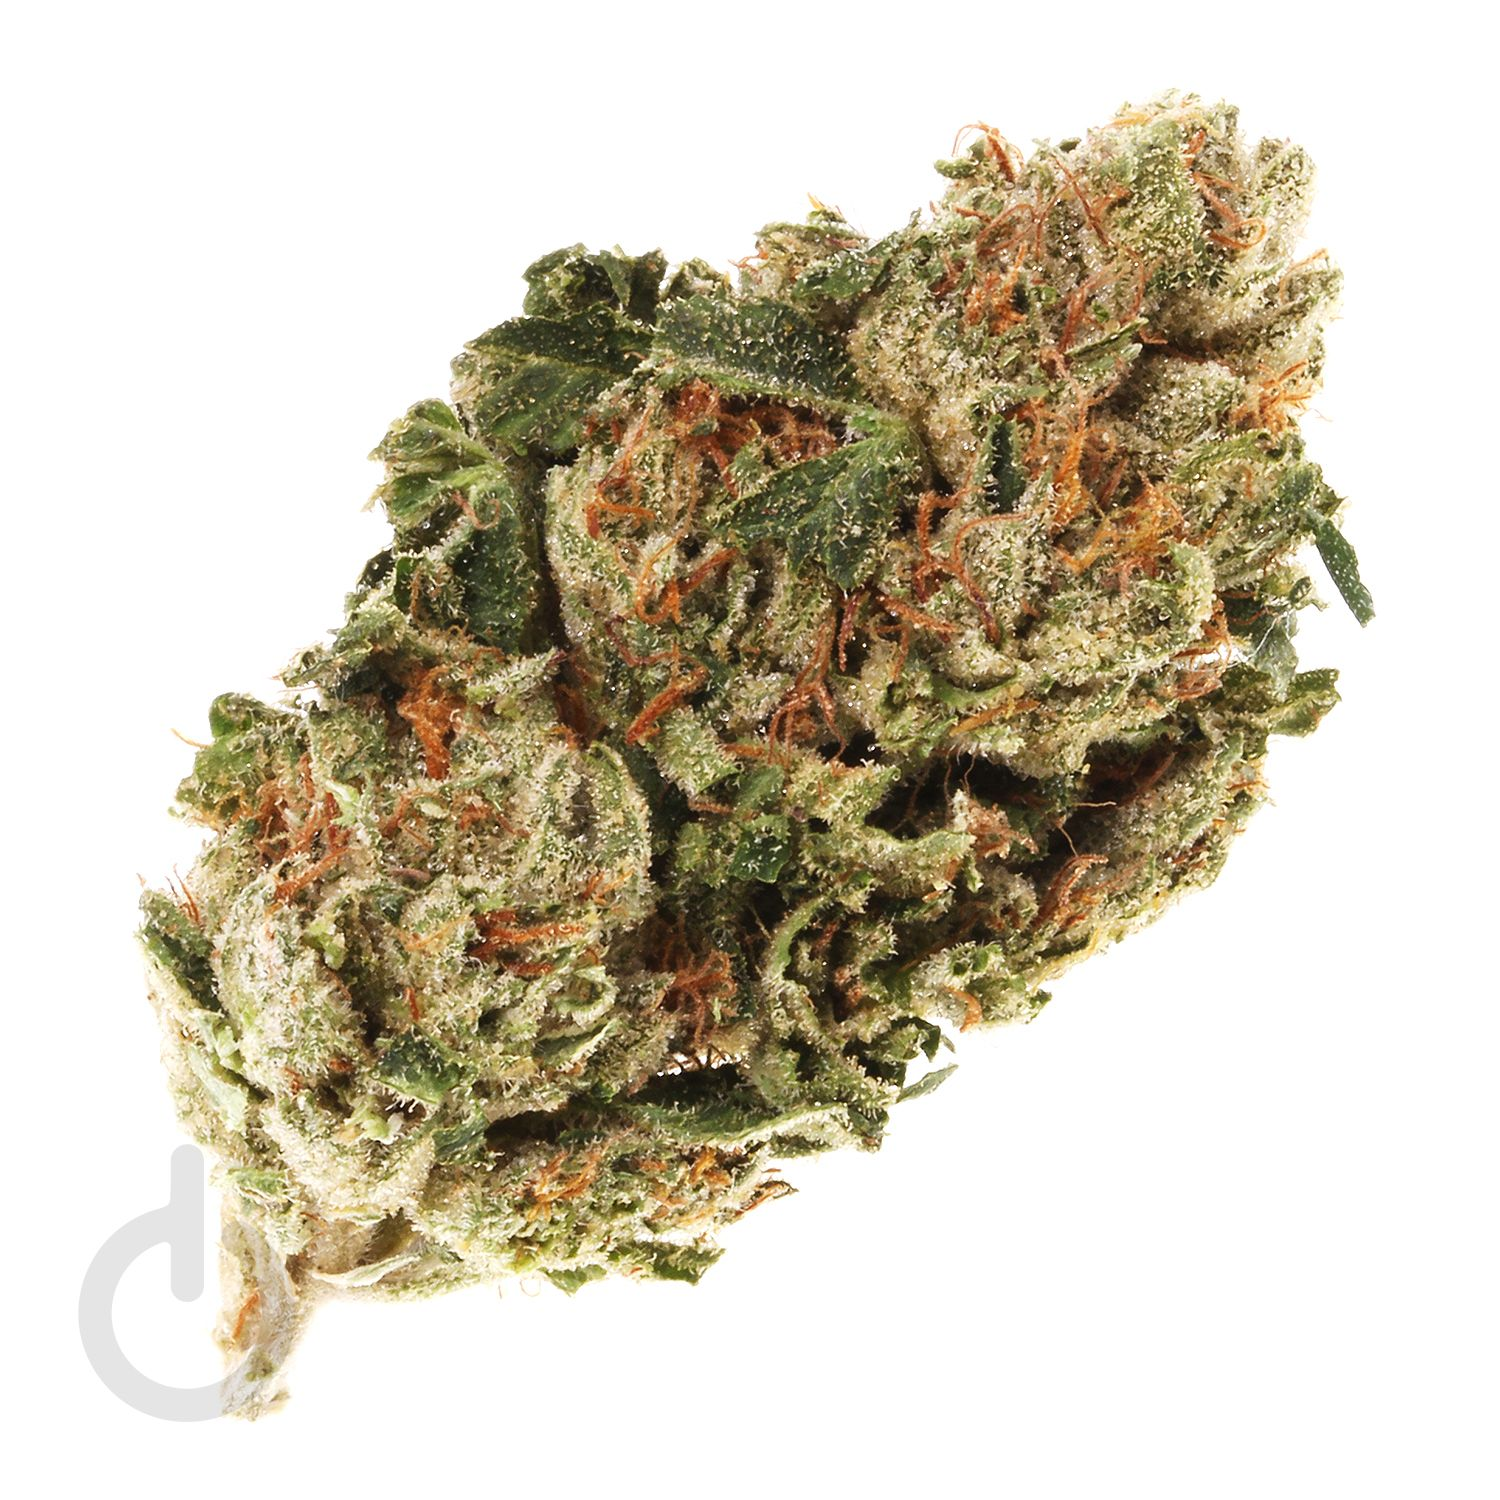 Pin on Strain of the Day